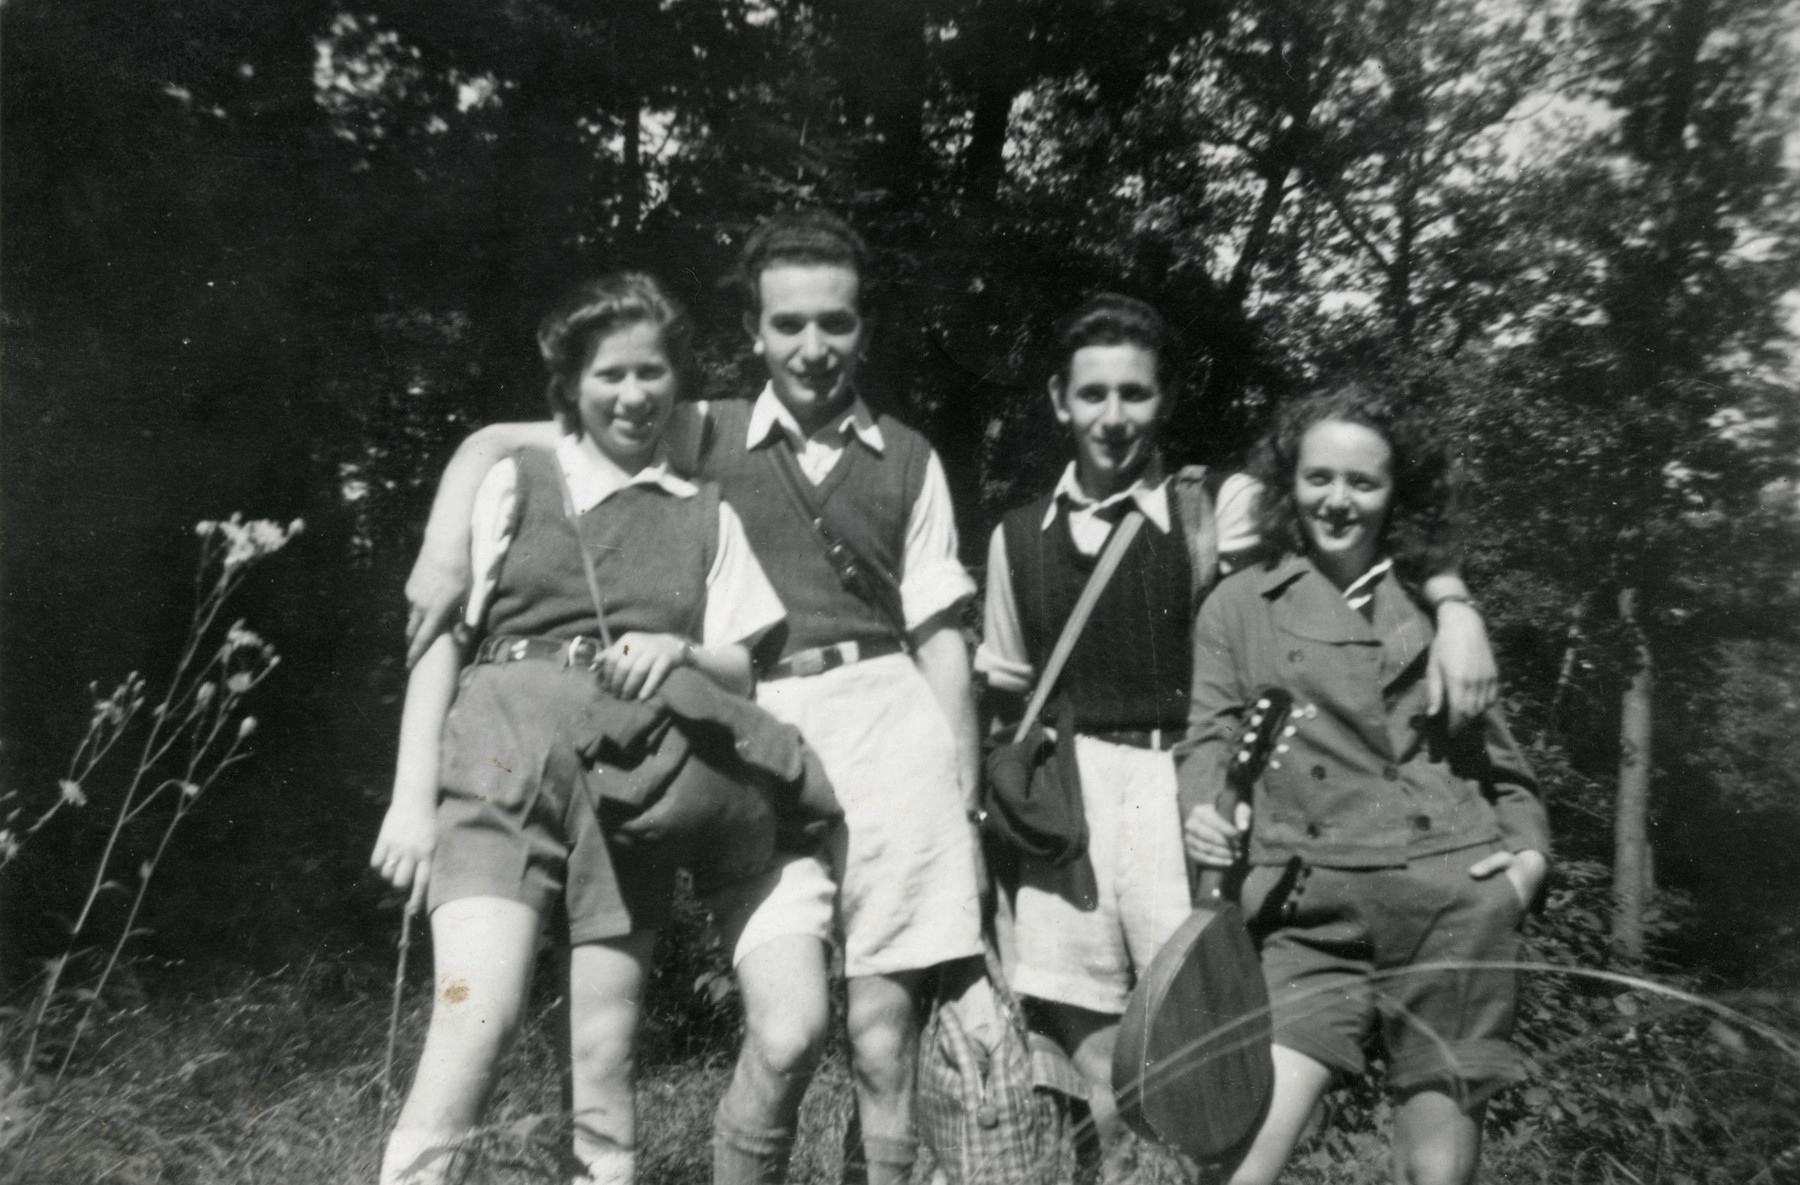 Group portrait of four members of the Hungarian Zionist resistance group.  From left to right are Tzippy and Ephraim Teichman, David Gur and an unidentified friend.